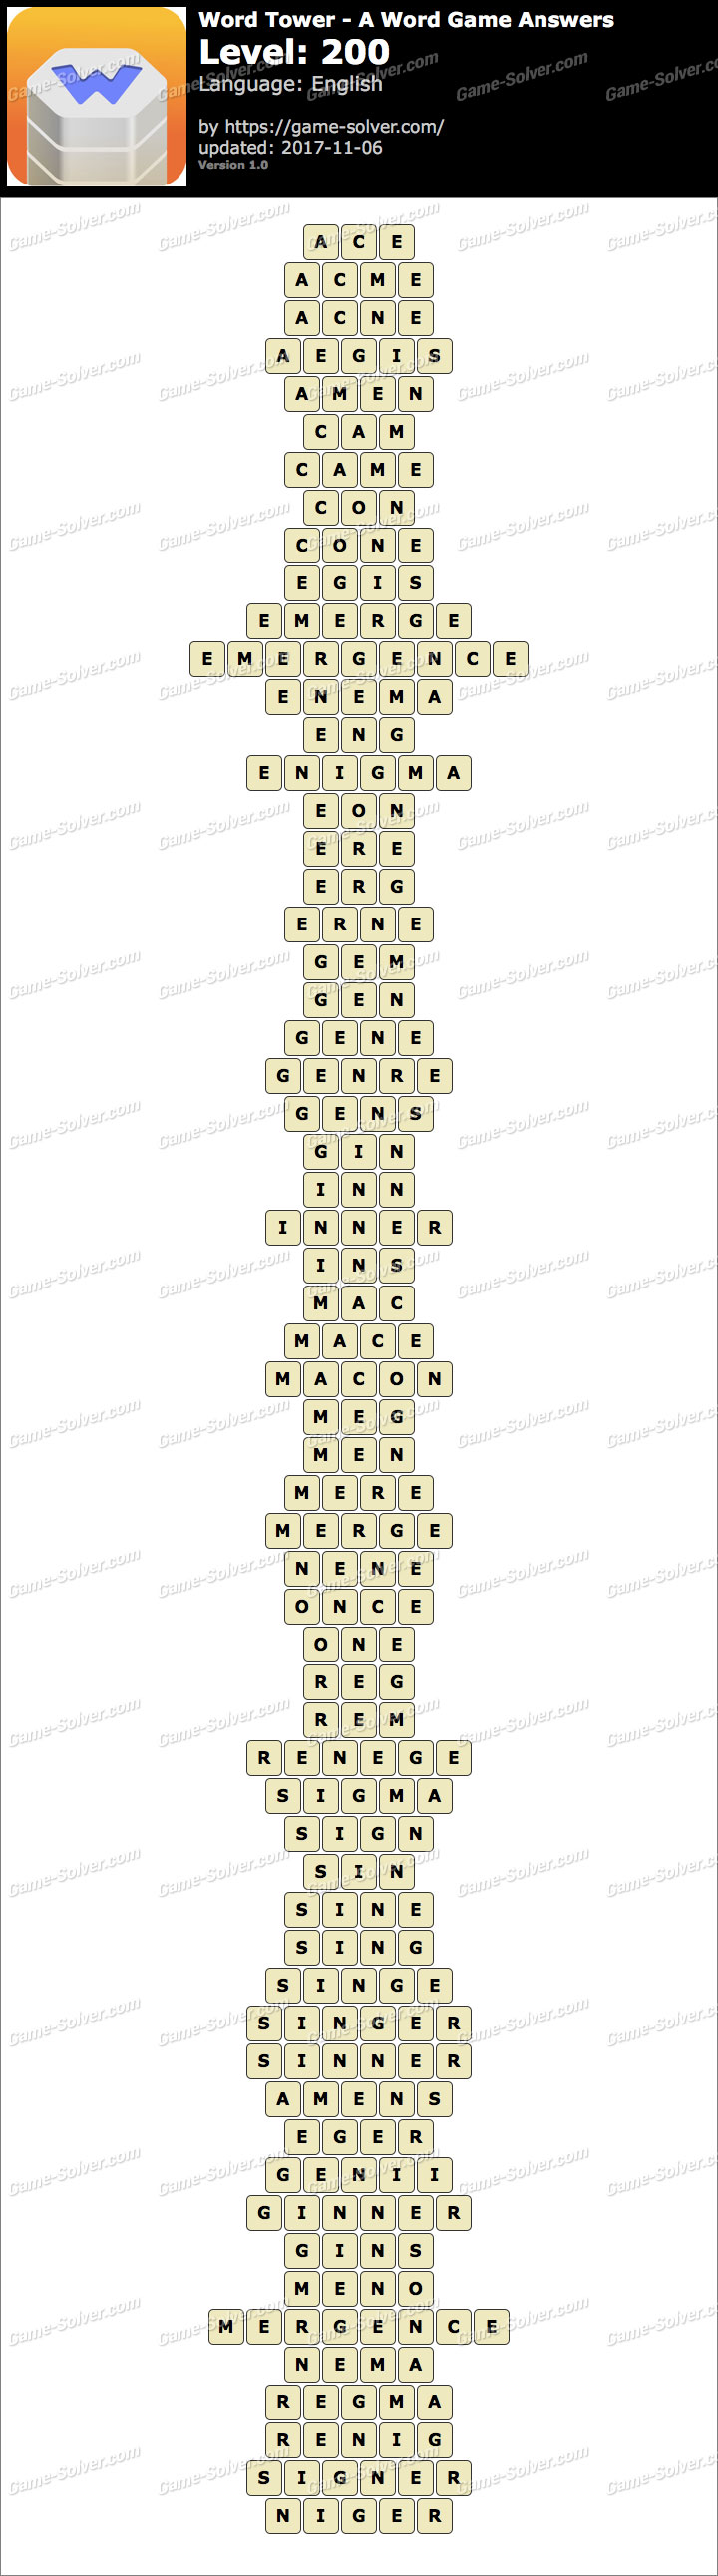 Word Tower Level 200 Answers